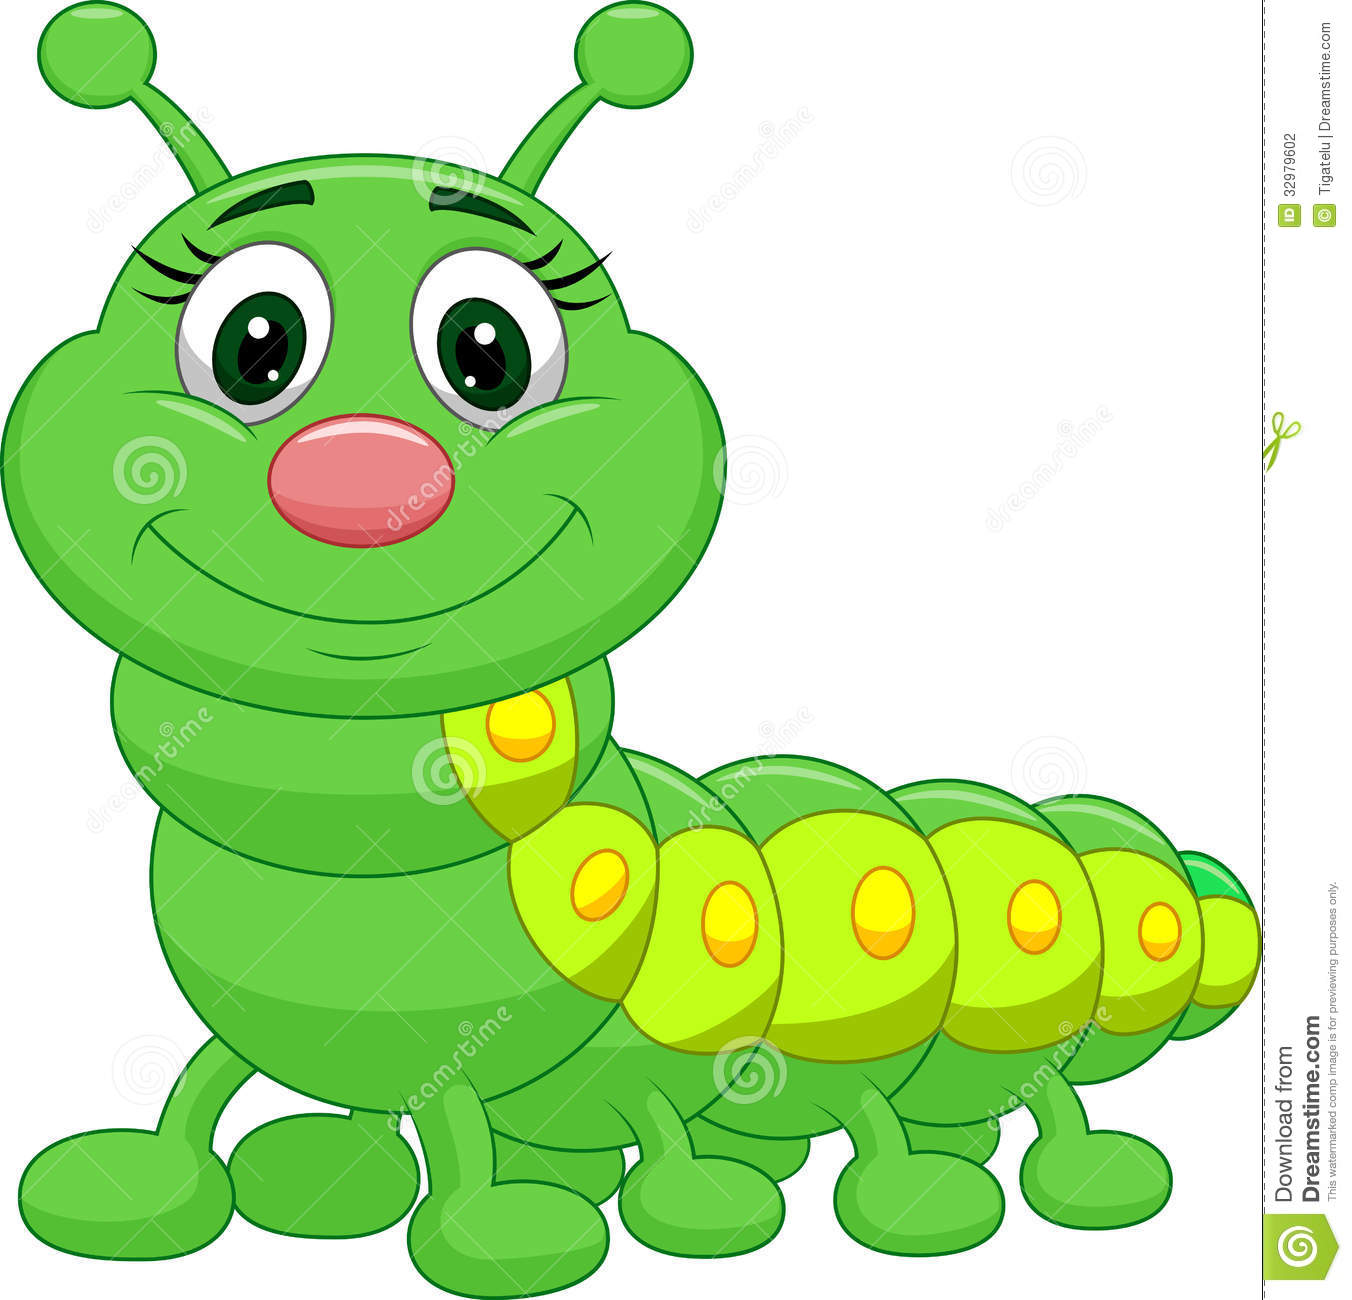 Illustration Of Cute Green Caterpillar C-Illustration Of Cute Green Caterpillar Cartoon-18